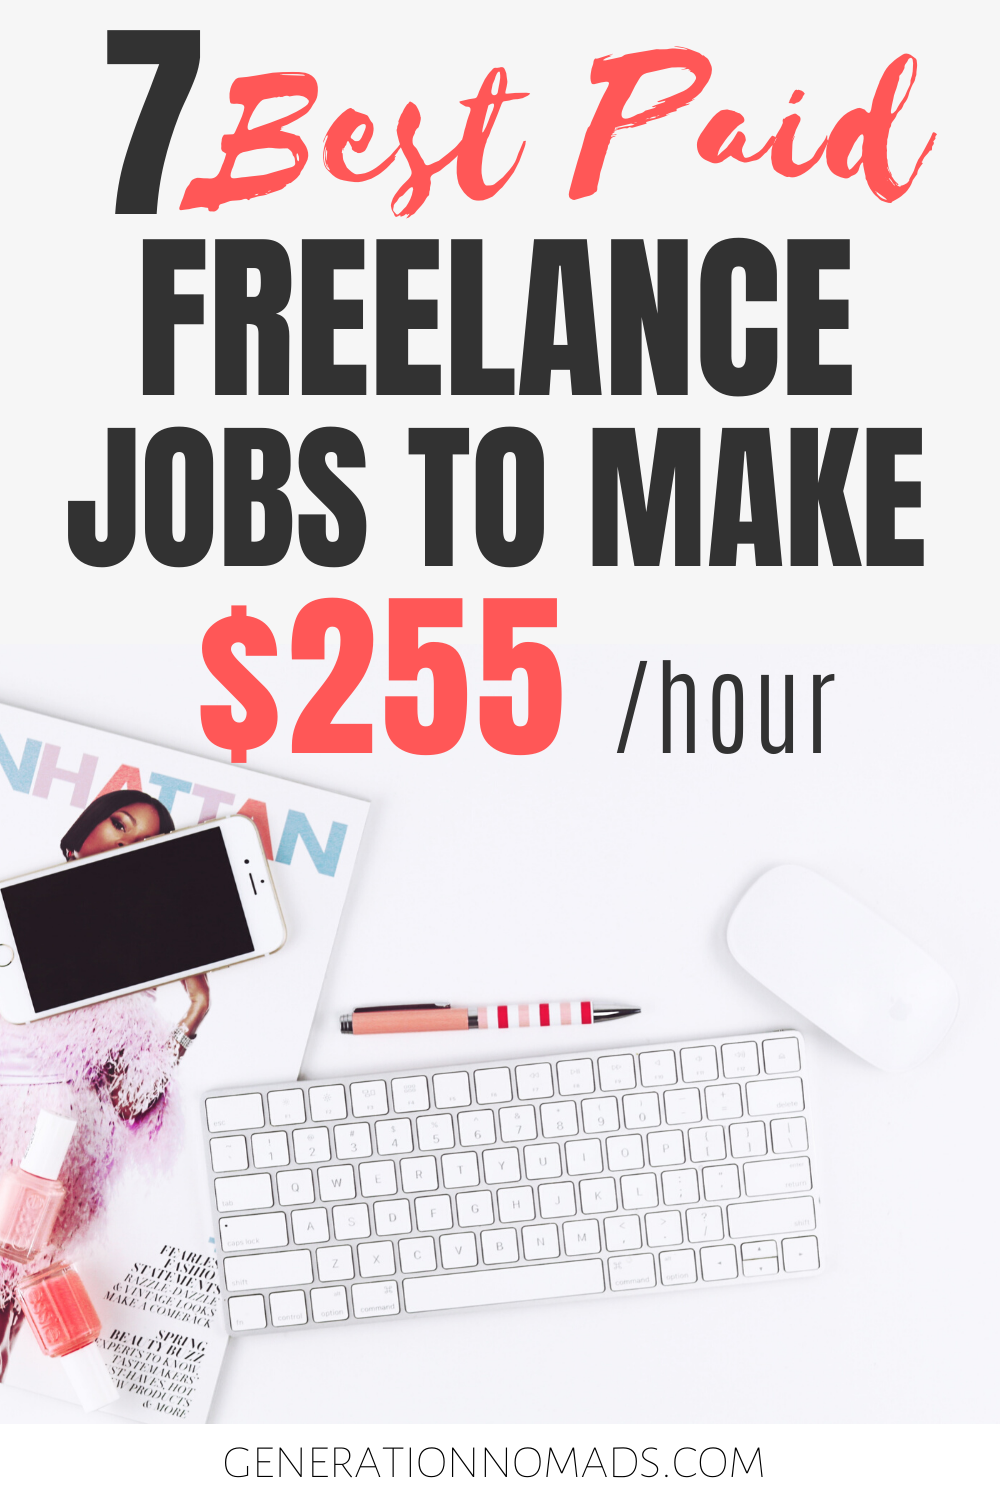 7 Highest Paying Jobs For Freelancers Freelance Jobs That Make More Money With Up To 255 Hr In 2020 Freelancing Jobs Paying Jobs Money Making Hacks